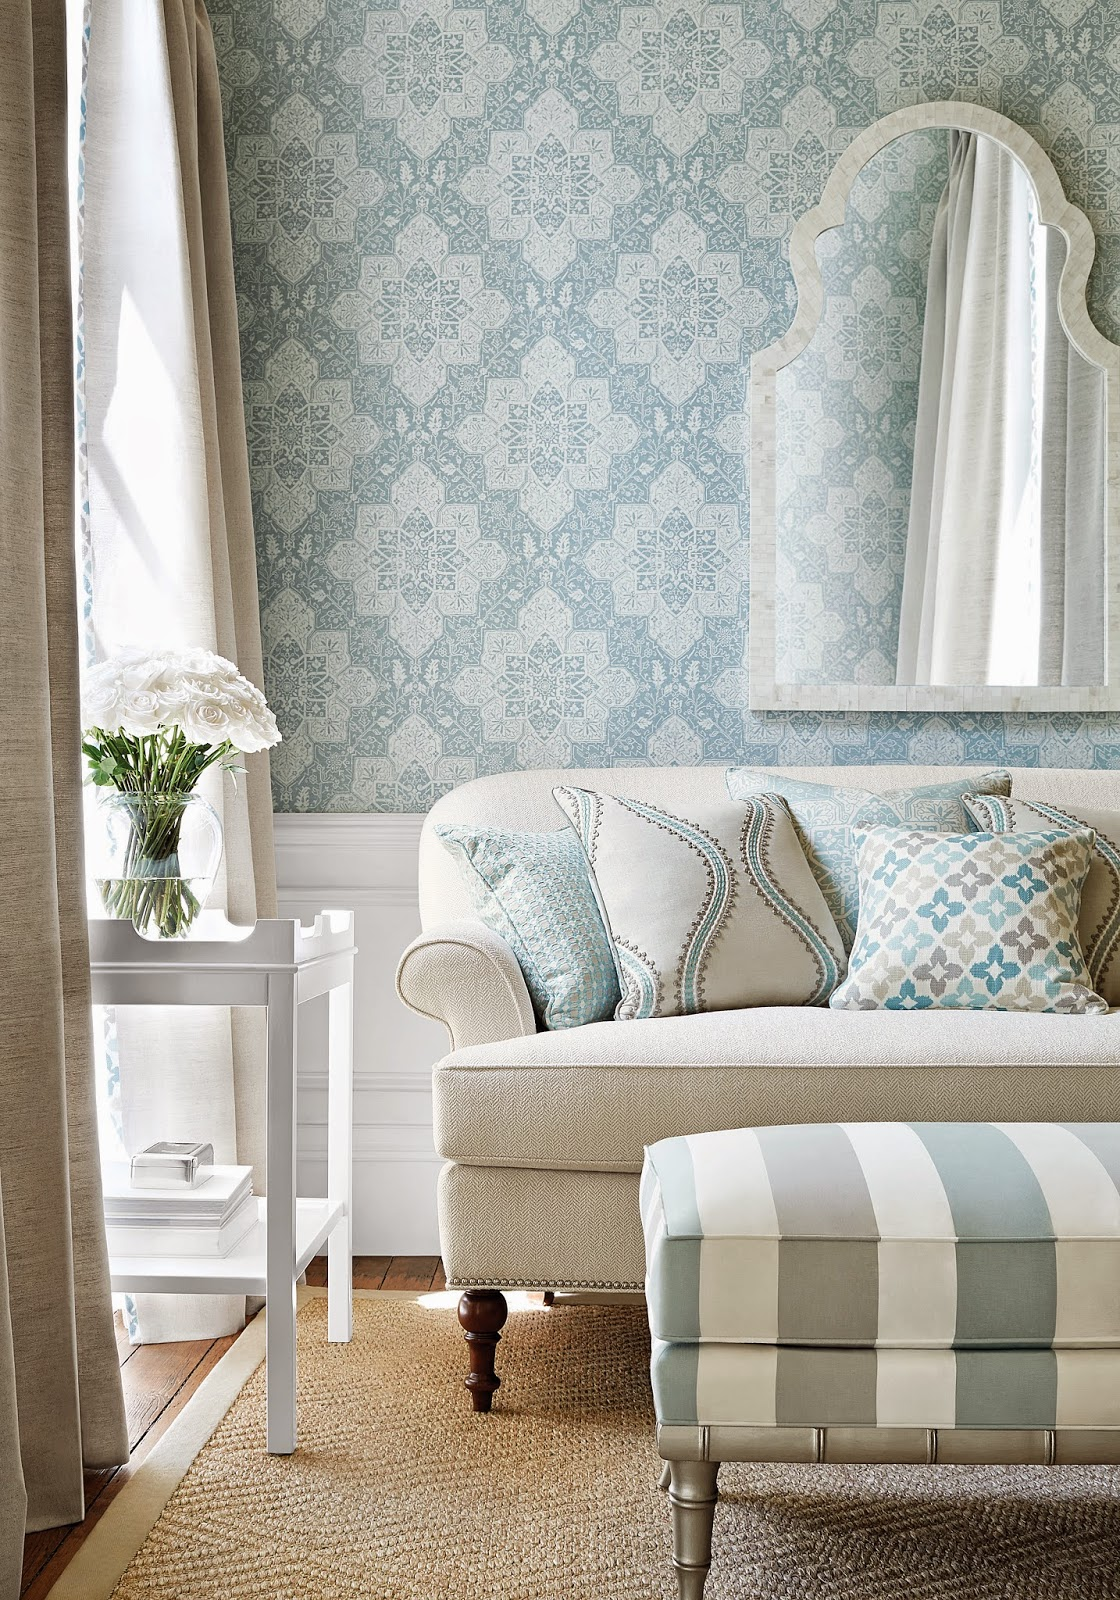 http://thibautdesign.com/catalog/product/details/product/tarragon_t64122/material/wallpaper/colorway/aqua_205/